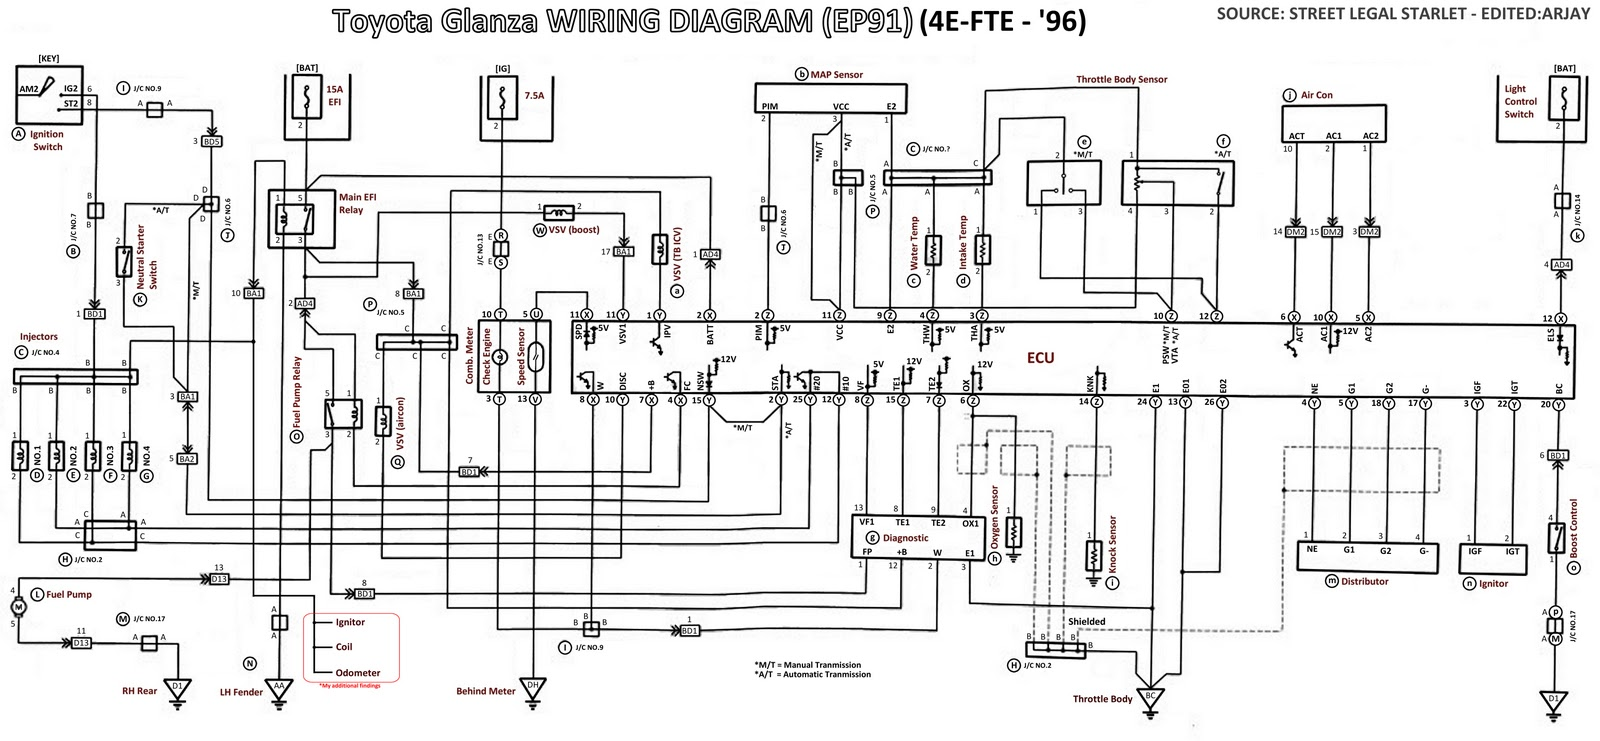 Help With Monsoon Wiring On A Toyota Glanza Ep91 4efte Engine - G4